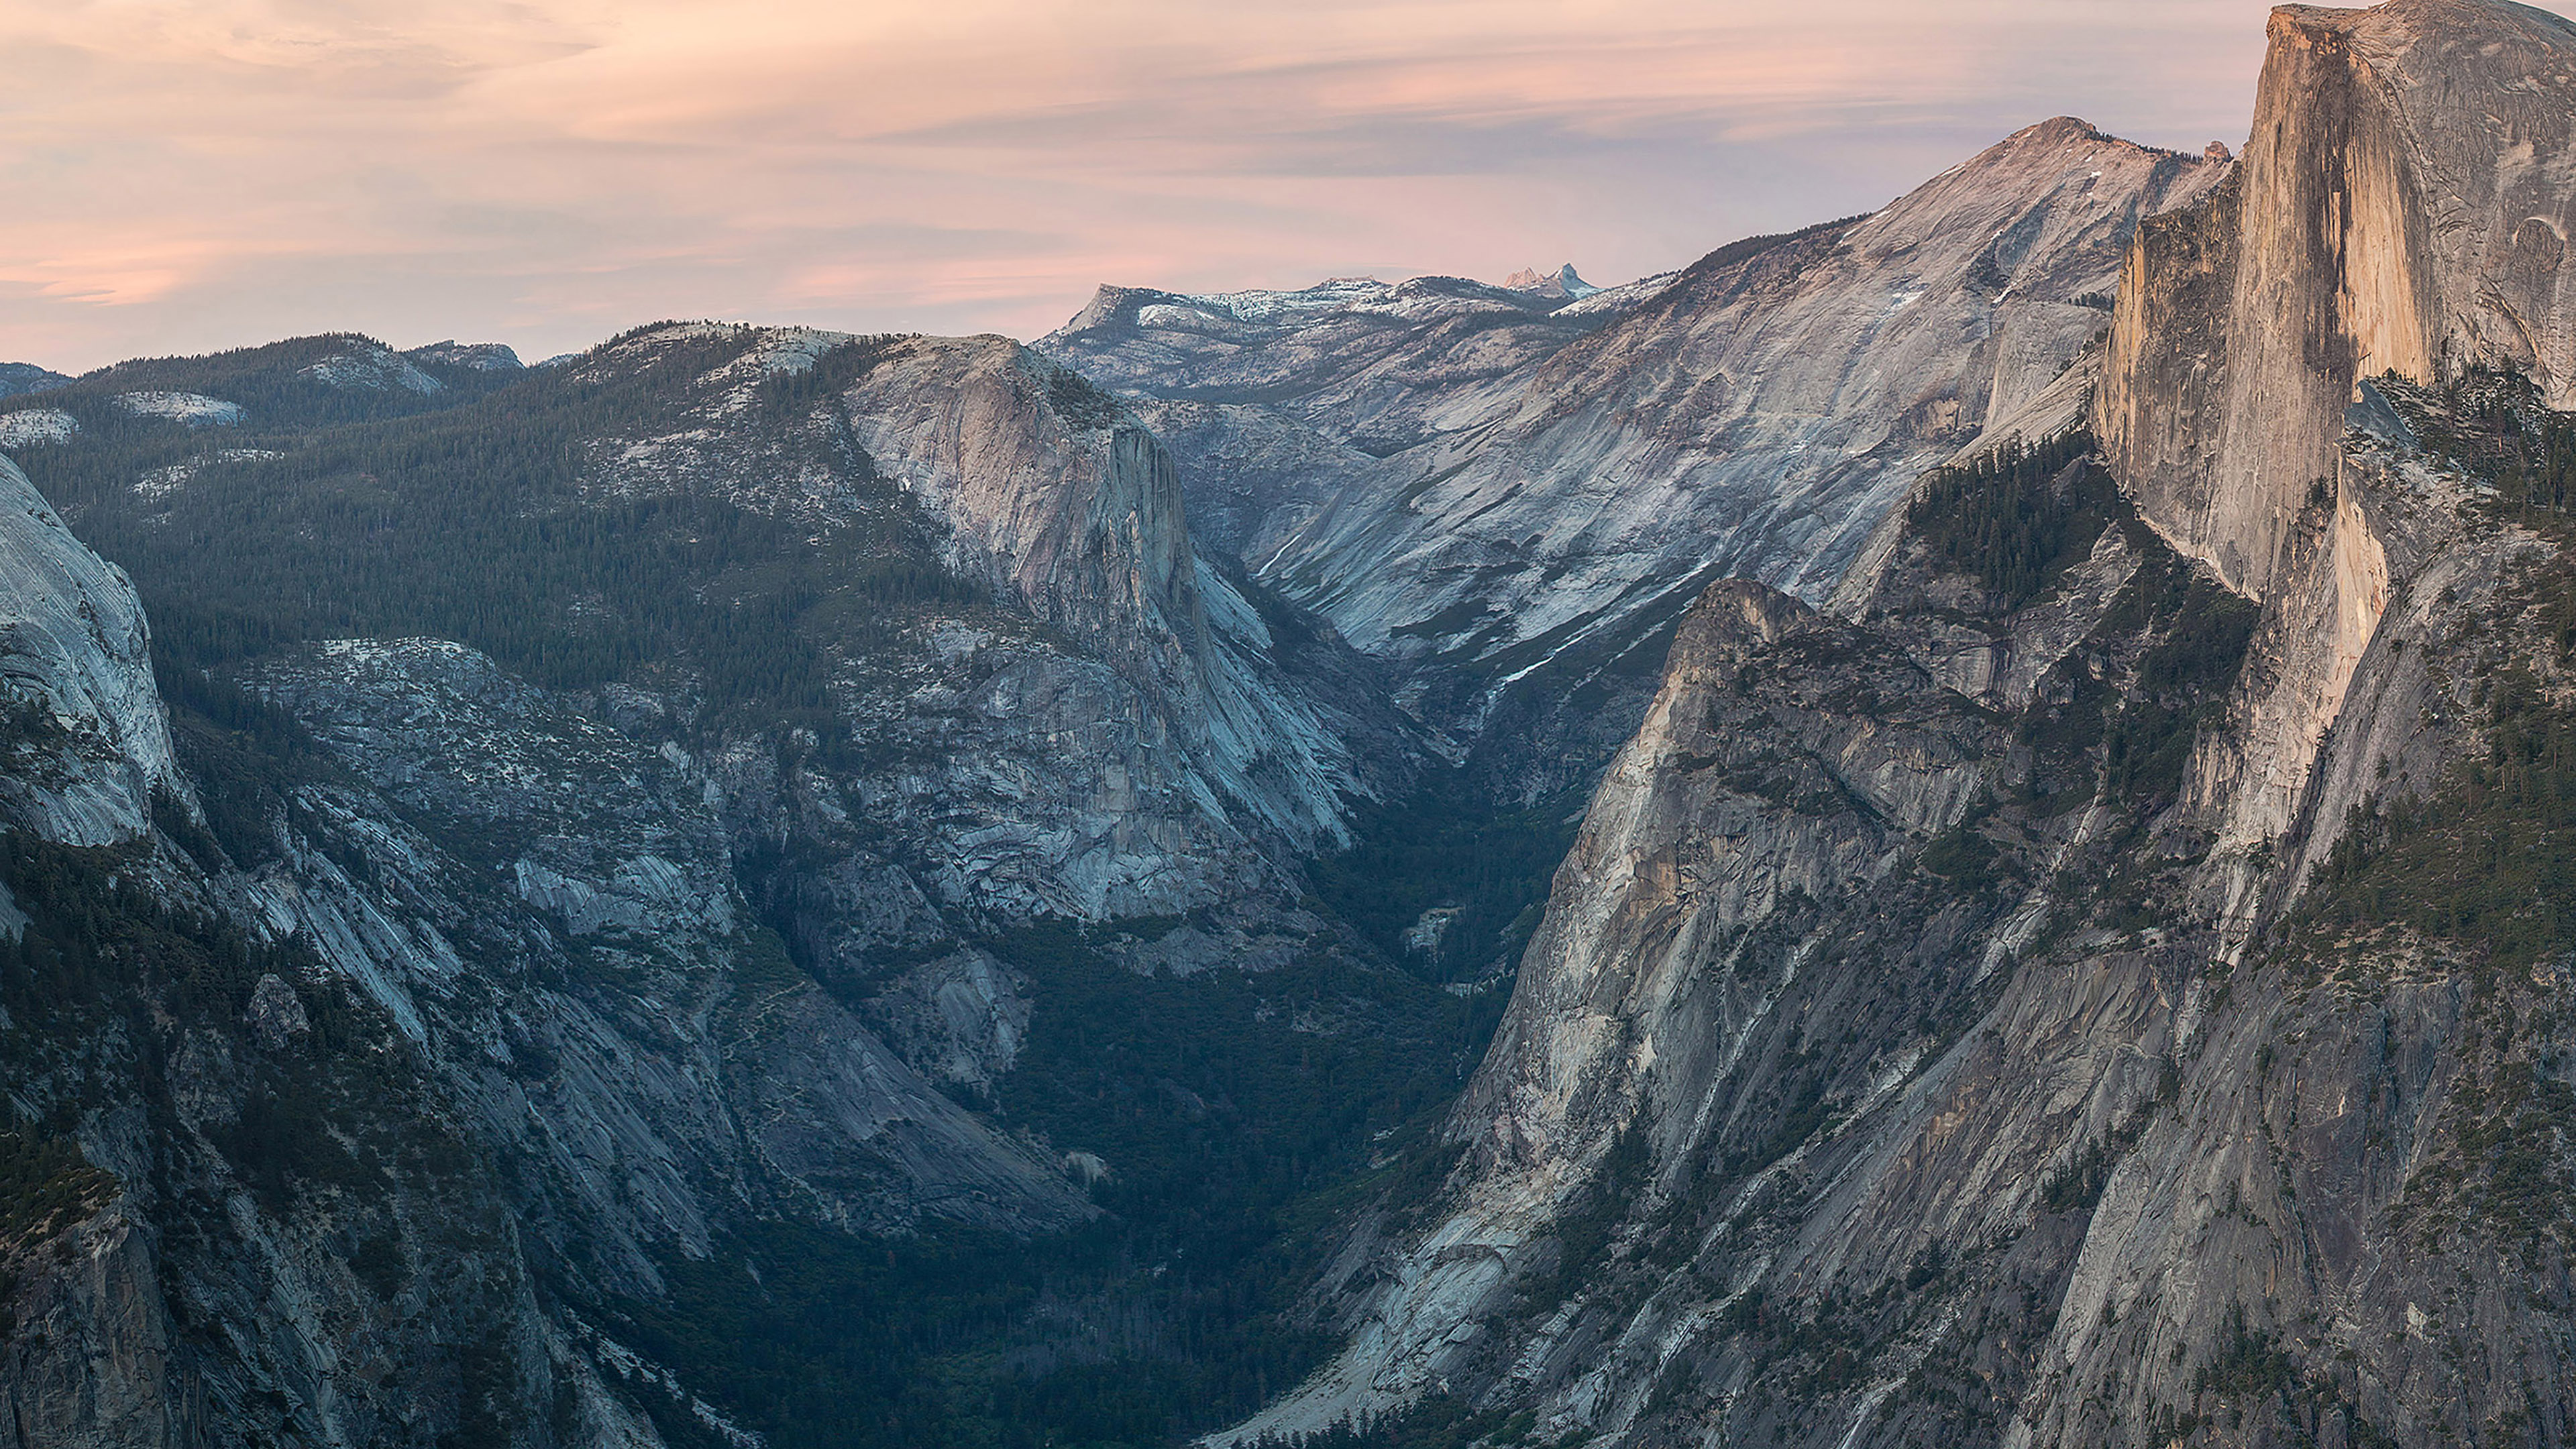 Disney Fall Wallpaper Mc54 Wallpaper Glacier Point At Sunset Yosemite Mountain